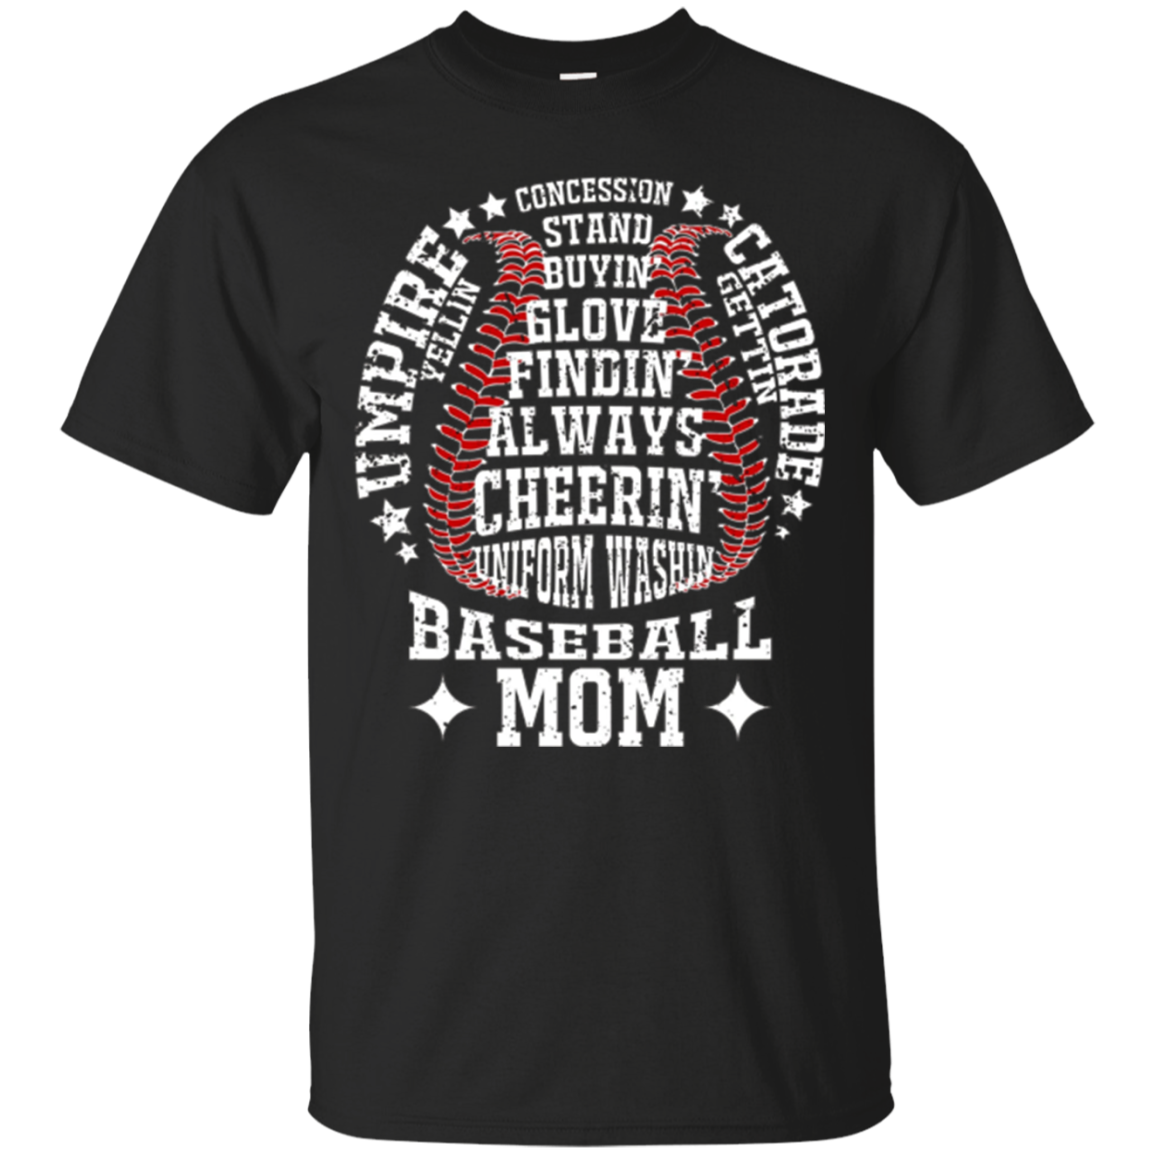 Baseball Mom T Shirts Funny Baseball Shirt For Mother